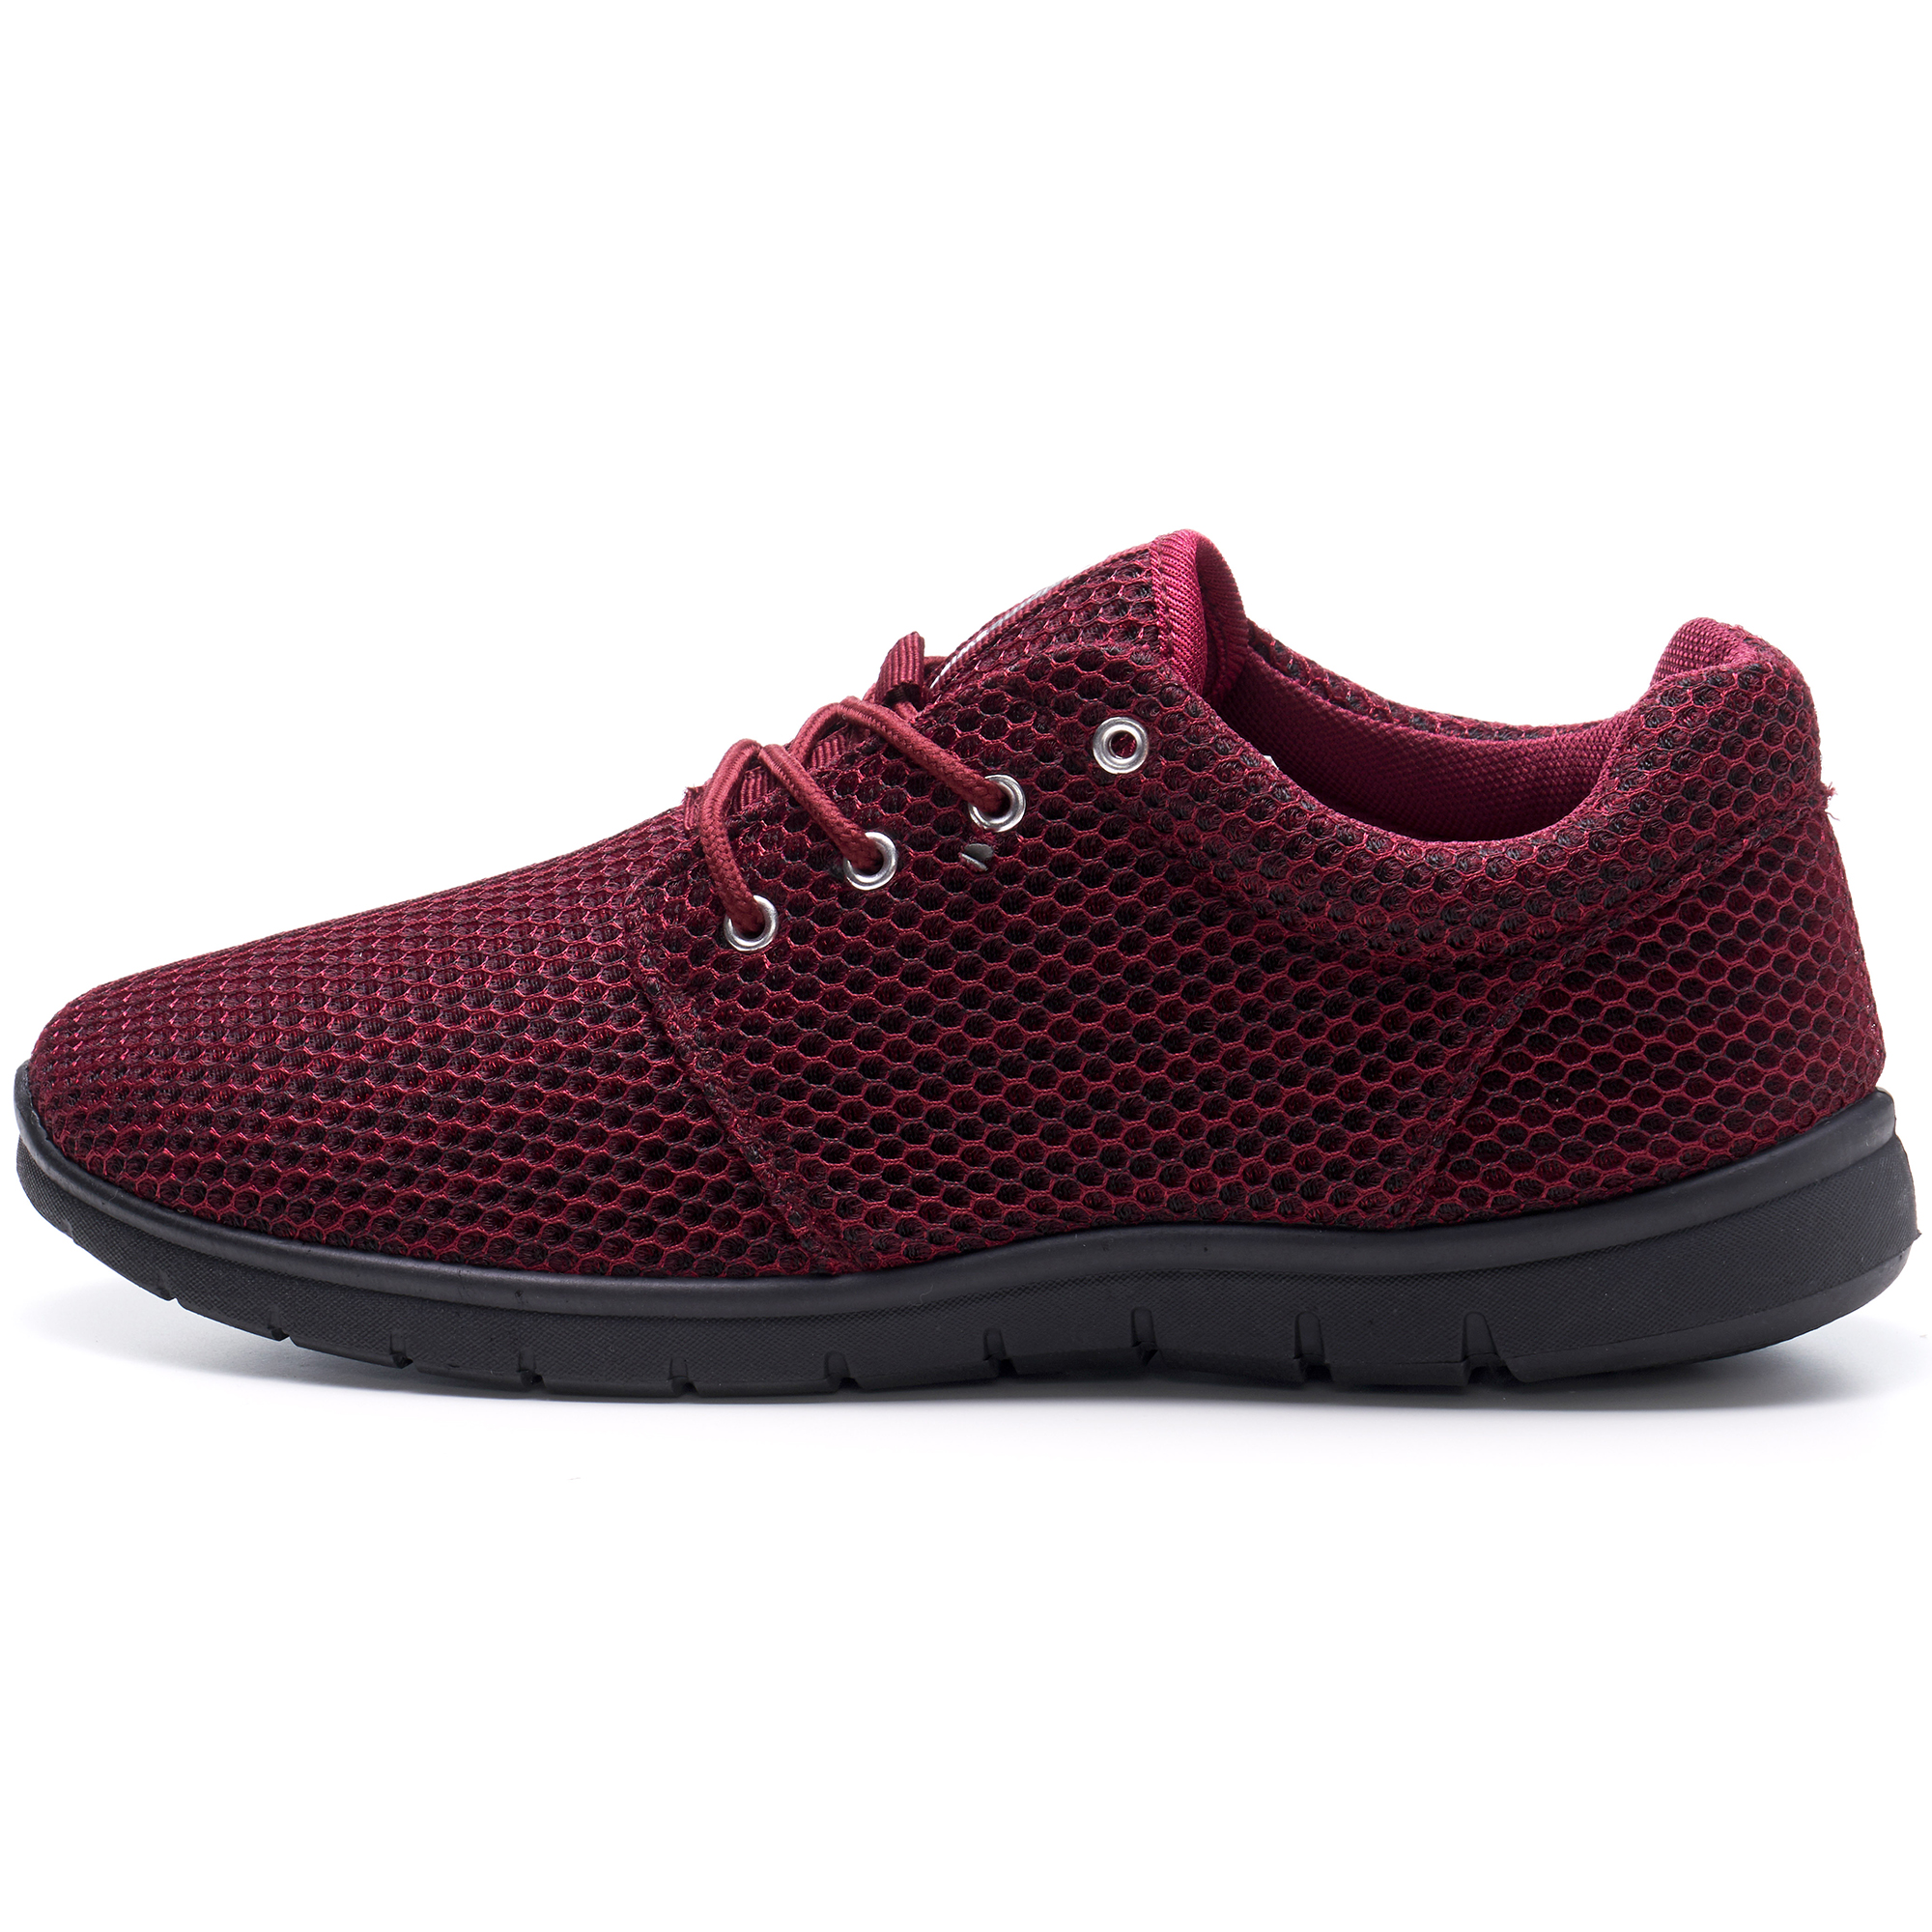 Alpine-Swiss-Kilian-Mesh-Sneakers-Casual-Shoes-Mens-amp-Womens-Lightweight-Trainer thumbnail 33